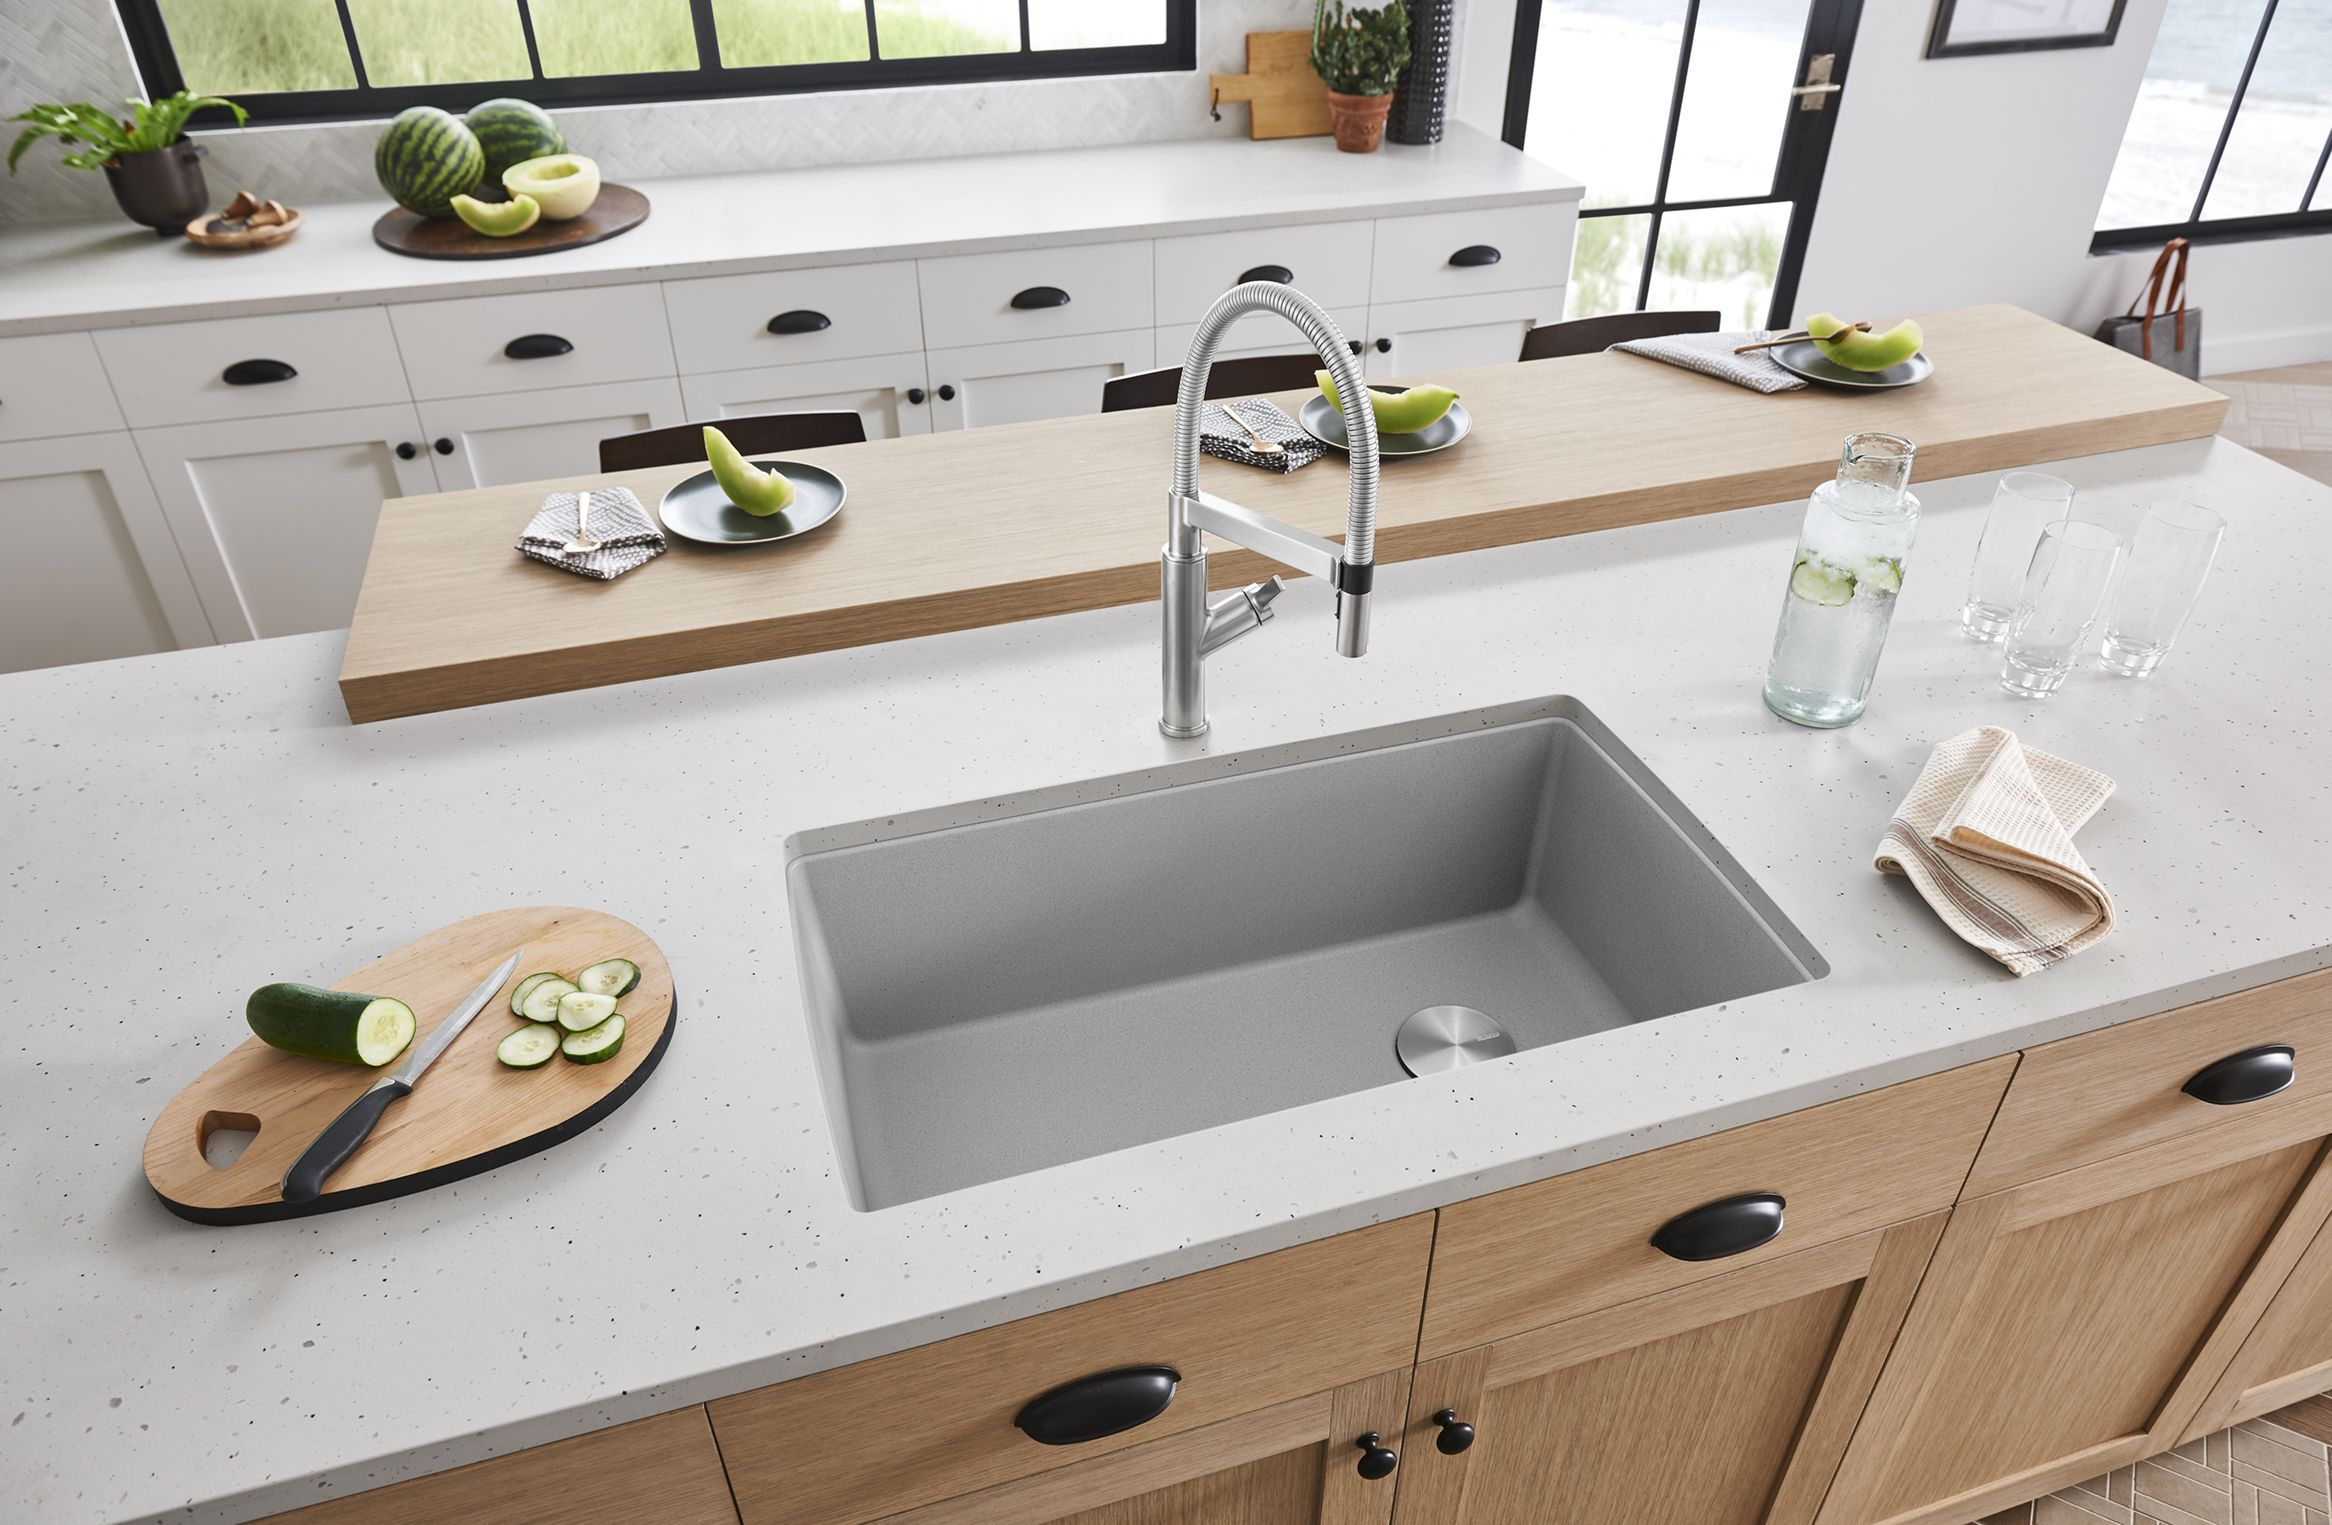 Gray Kitchen Sink Kitchen Sink Interior Grey Kitchen Sink Modern Kitchen Sinks